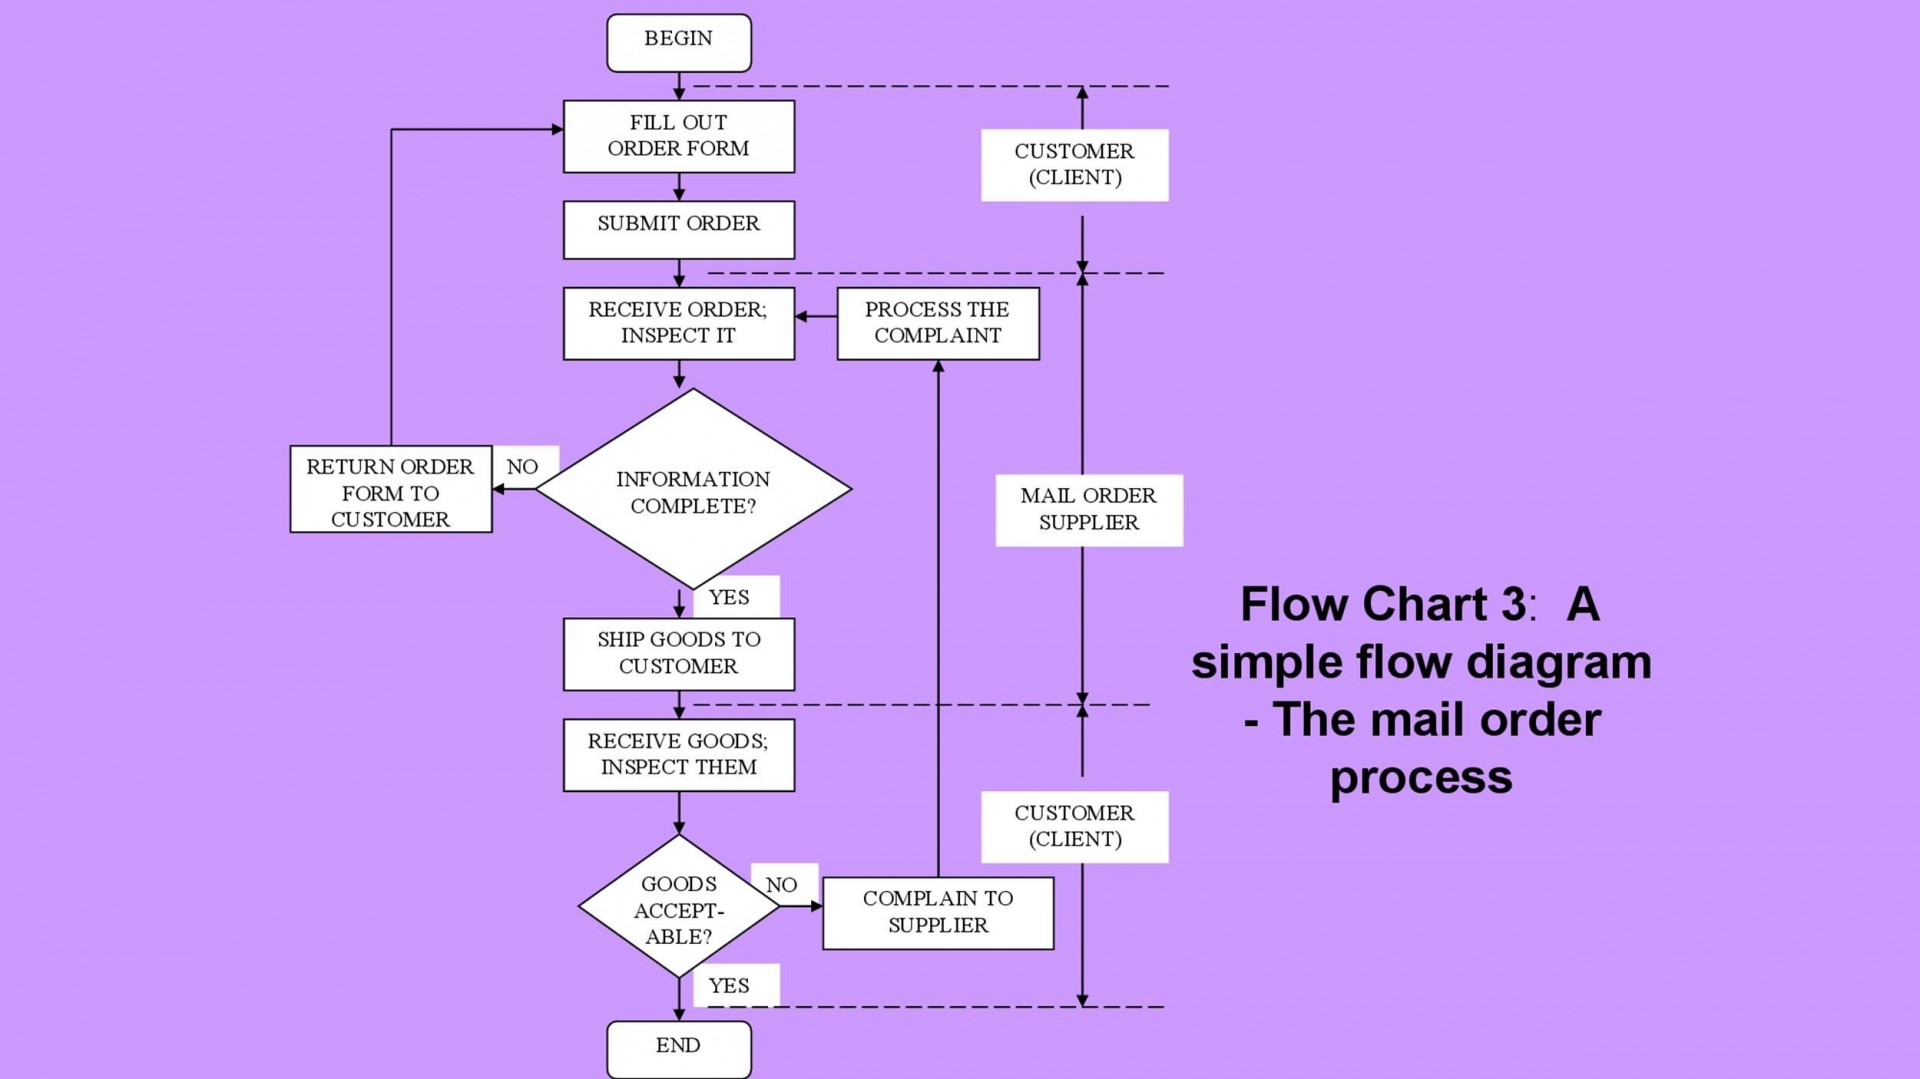 006 Shocking Proces Flow Chart Template Excel Download High Resolution  Free1920